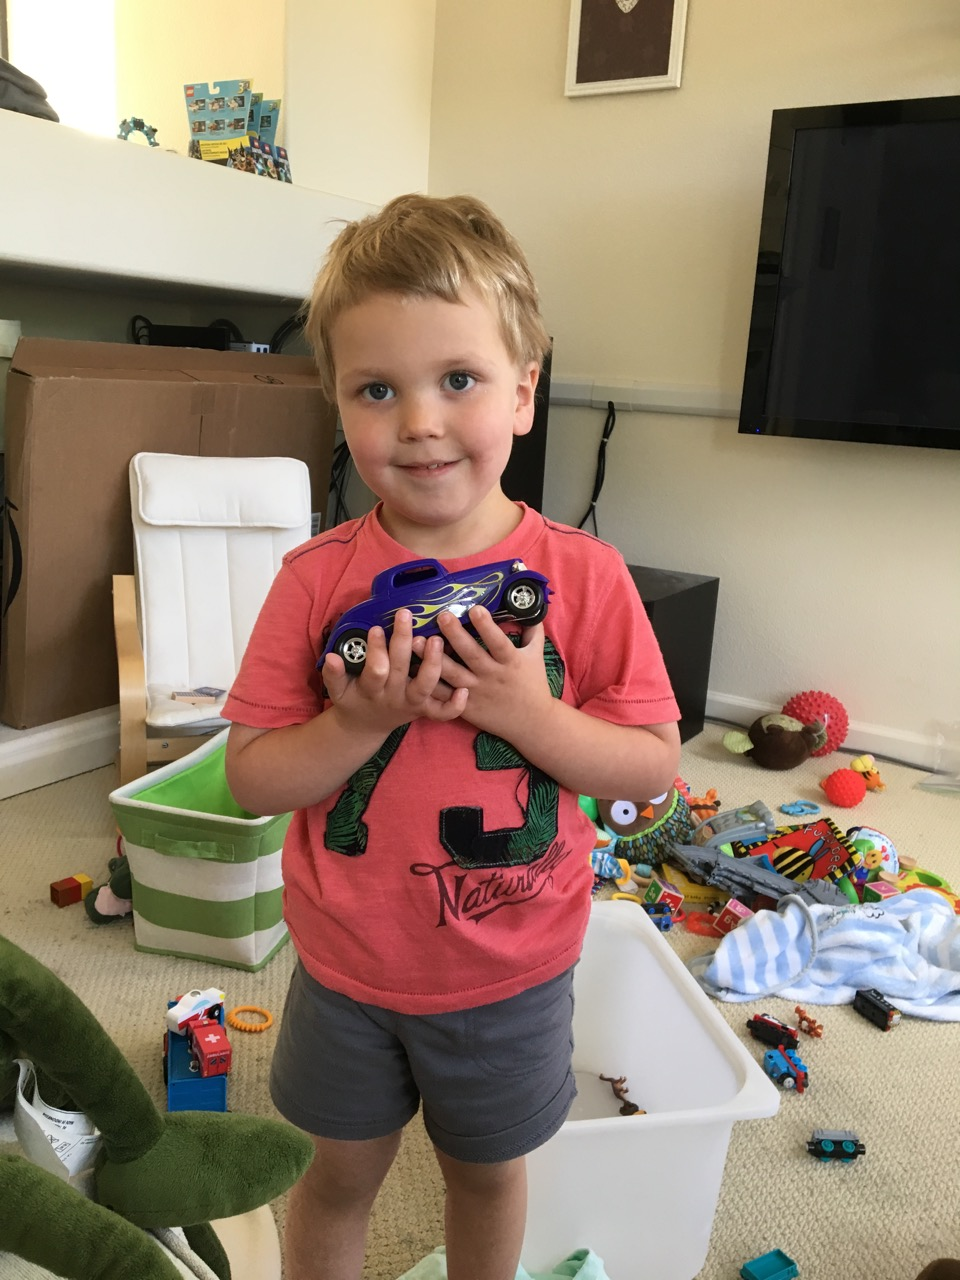 Showing off his model car (June)